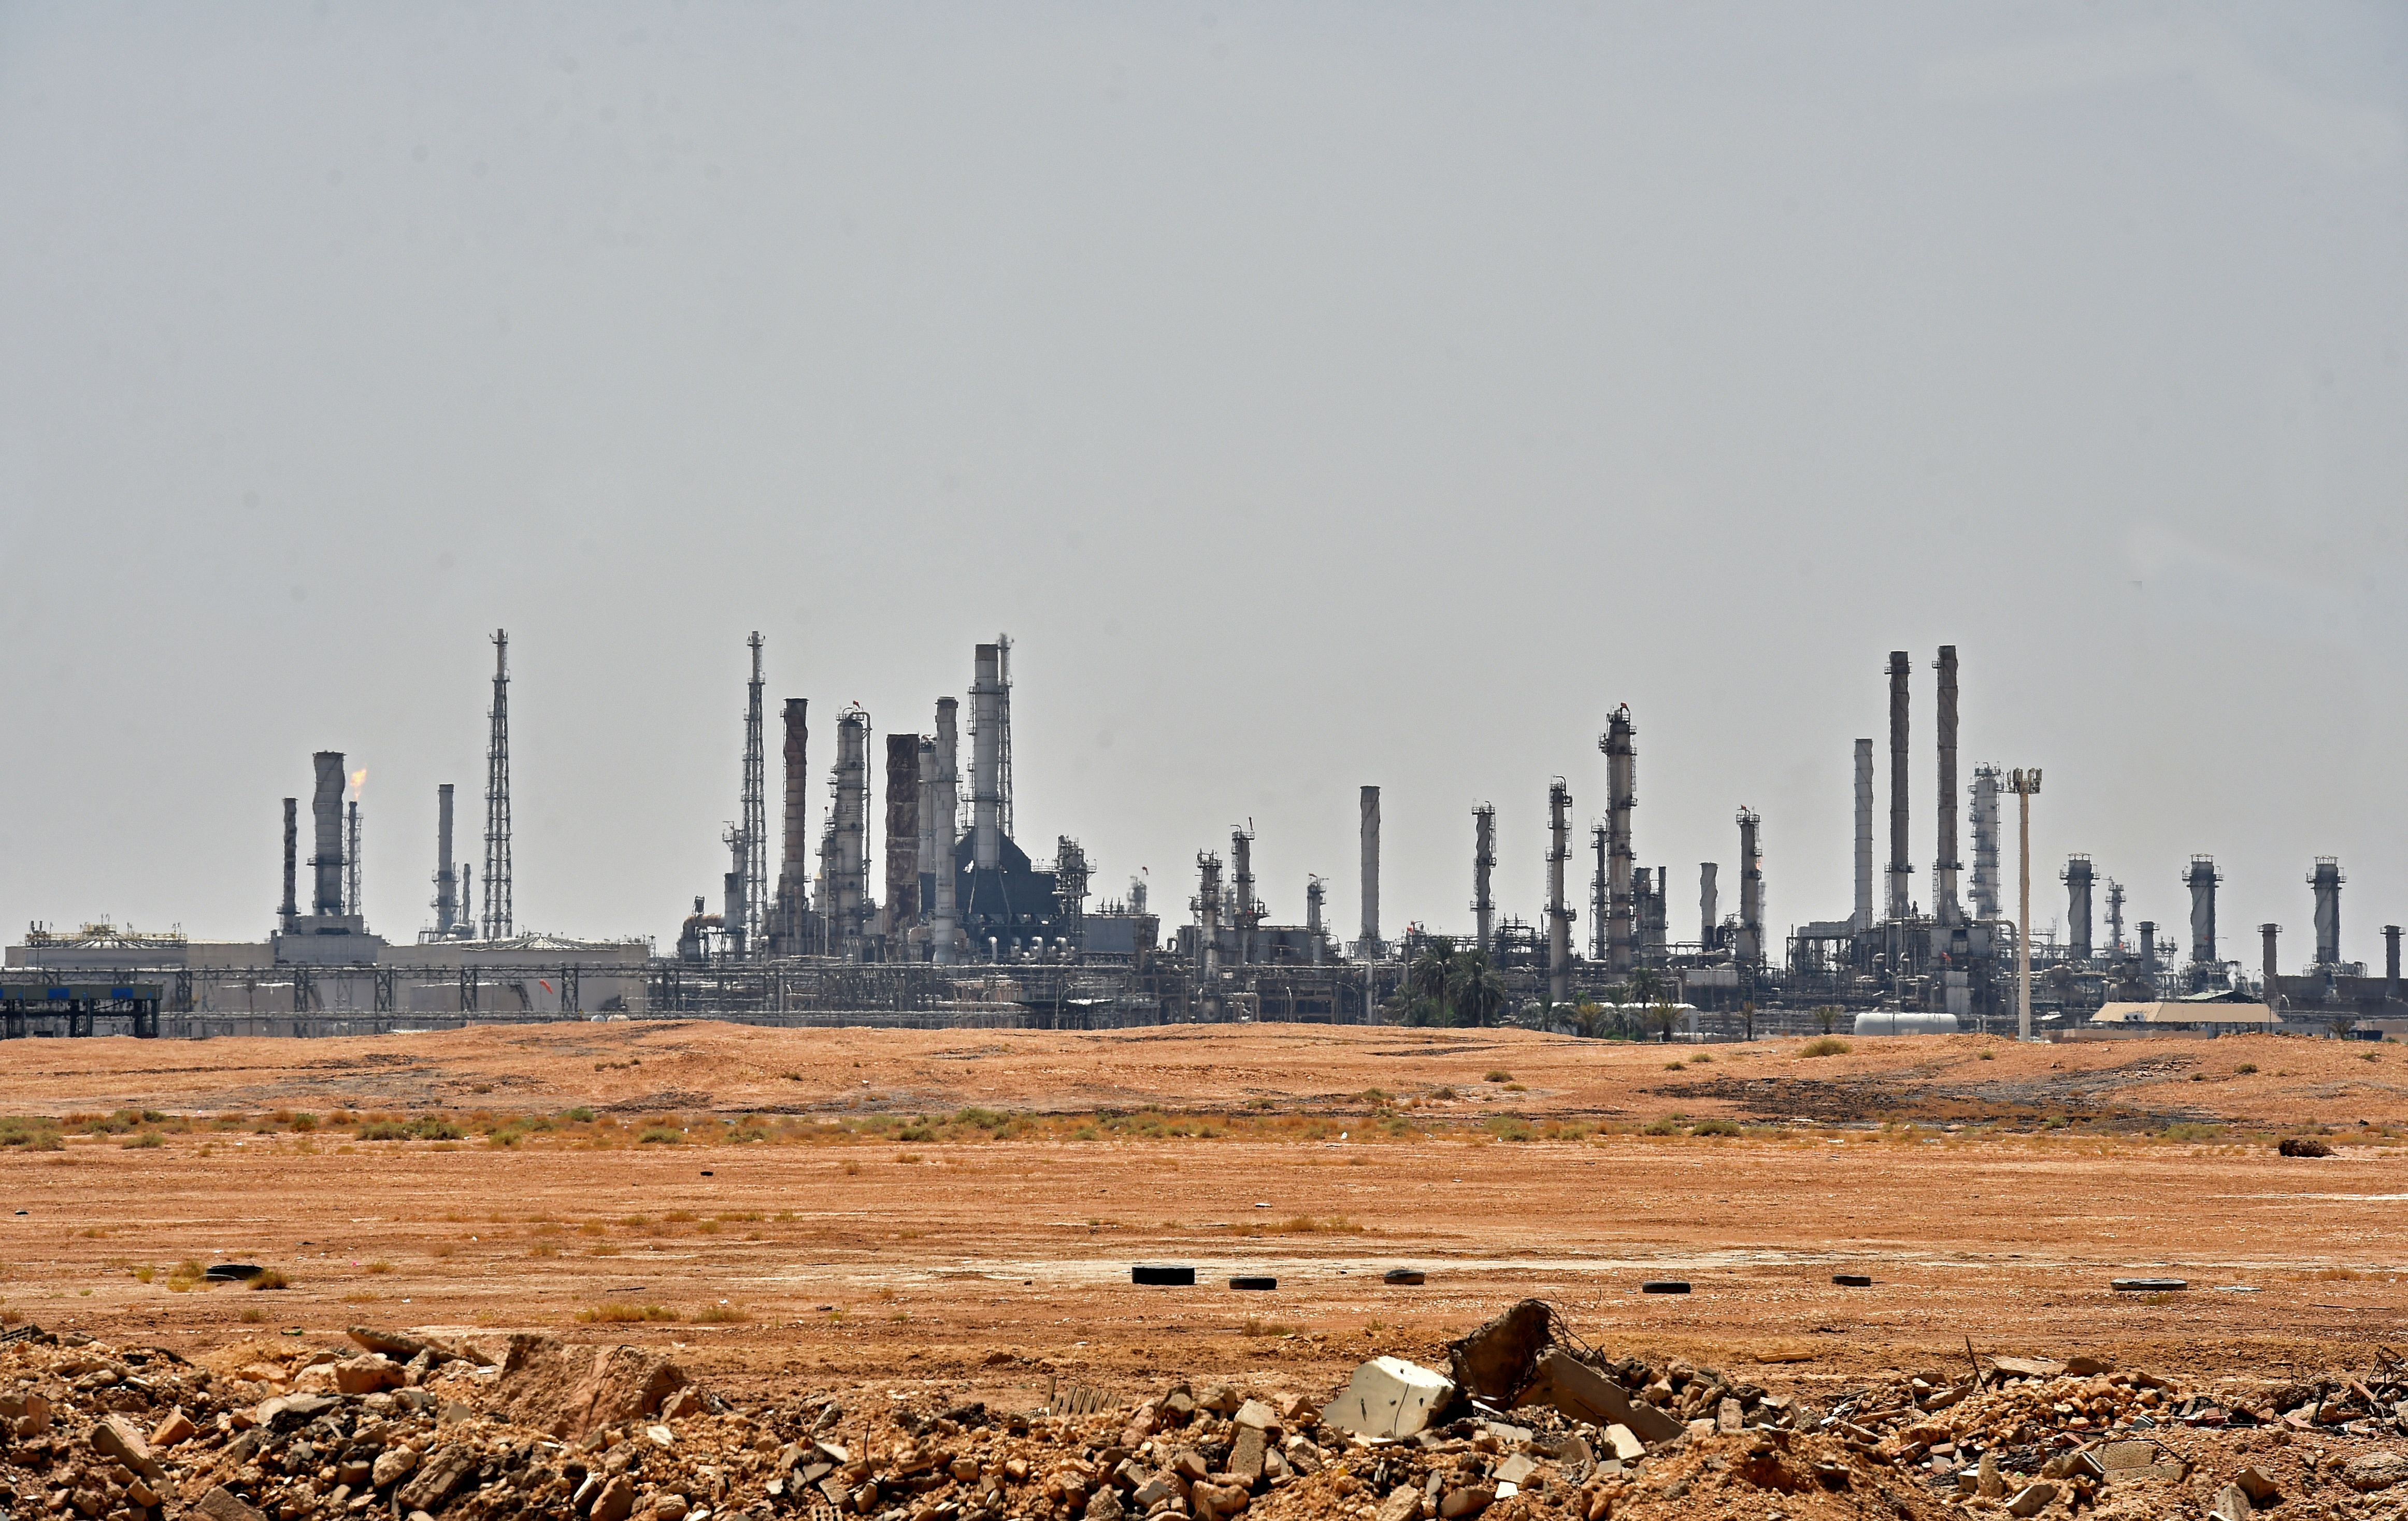 TOPSHOT - A picture taken on September 15, 2019 shows an Aramco oil facility near al-Khurj area, just south of the Saudi capital Riyadh. - Saudi Arabia raced today to restart operations at oil plants hit by drone attacks which slashed its production by half, as Iran dismissed US claims it was behind the assault.